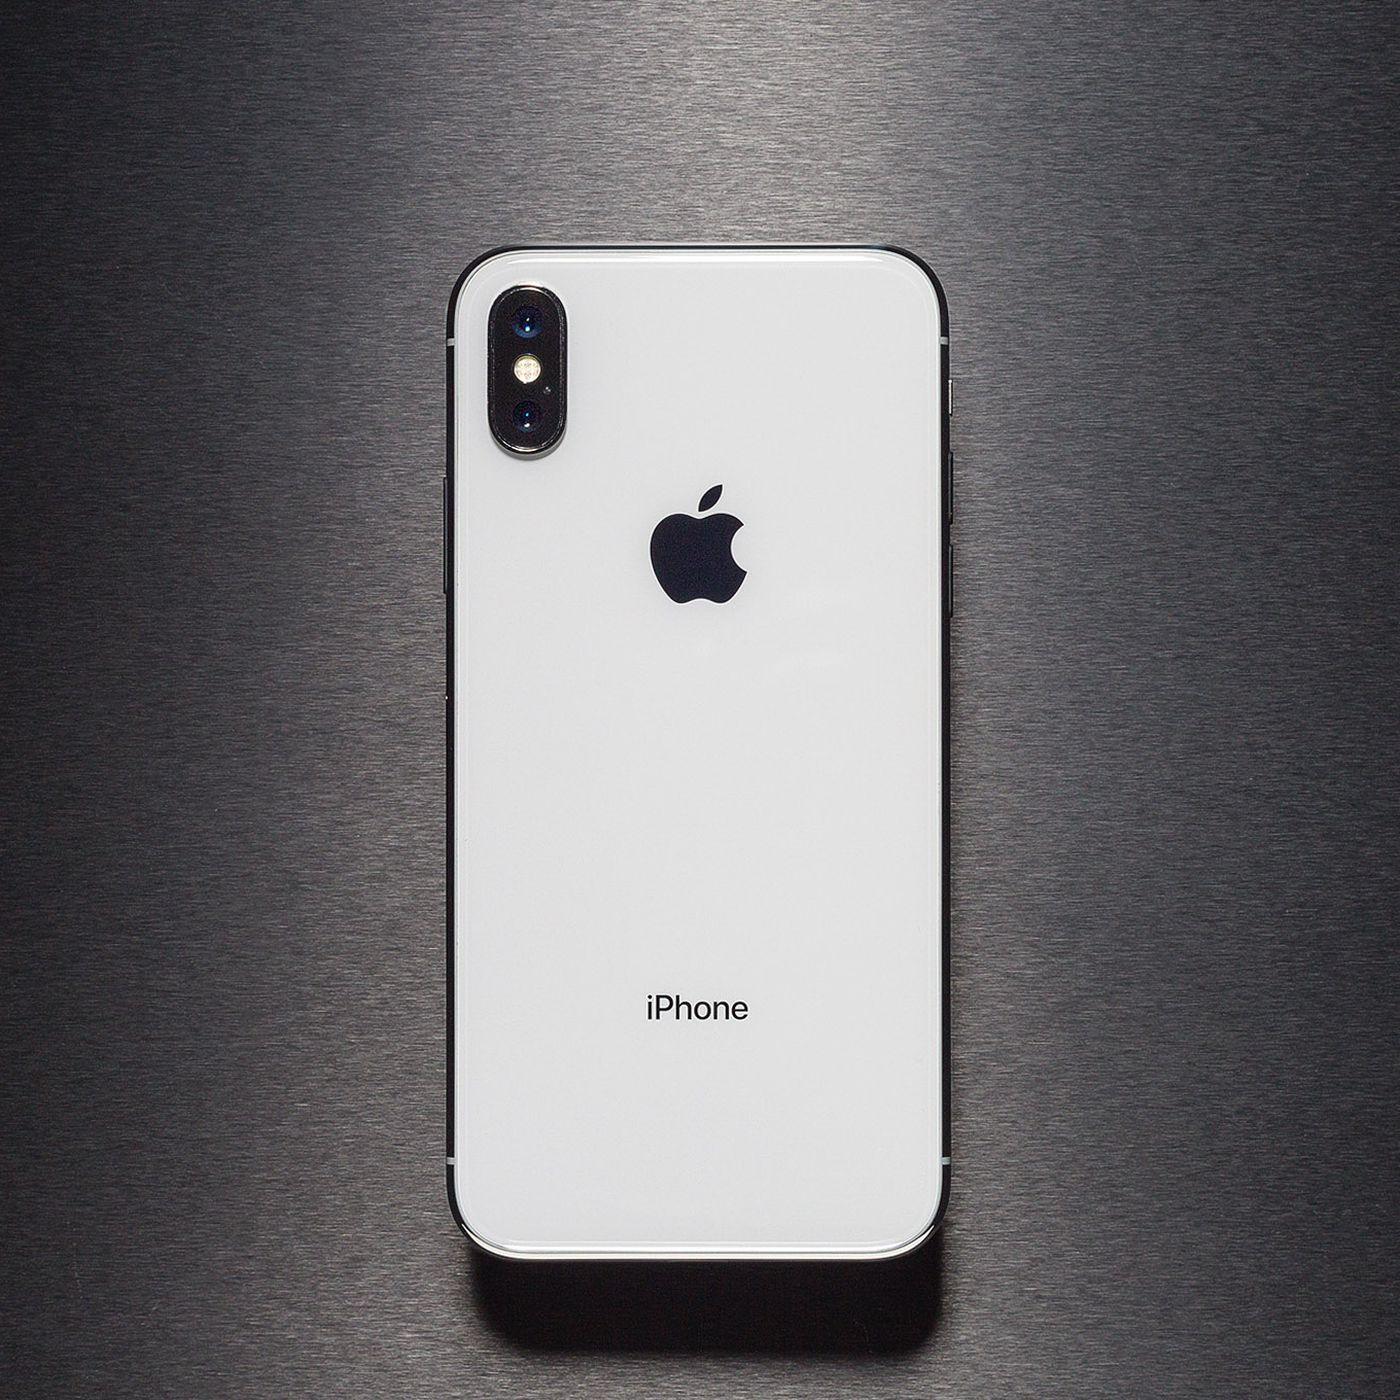 theverge.com - Jon Porter - Apple reportedly replaced 10 times as many batteries as expected in 2018